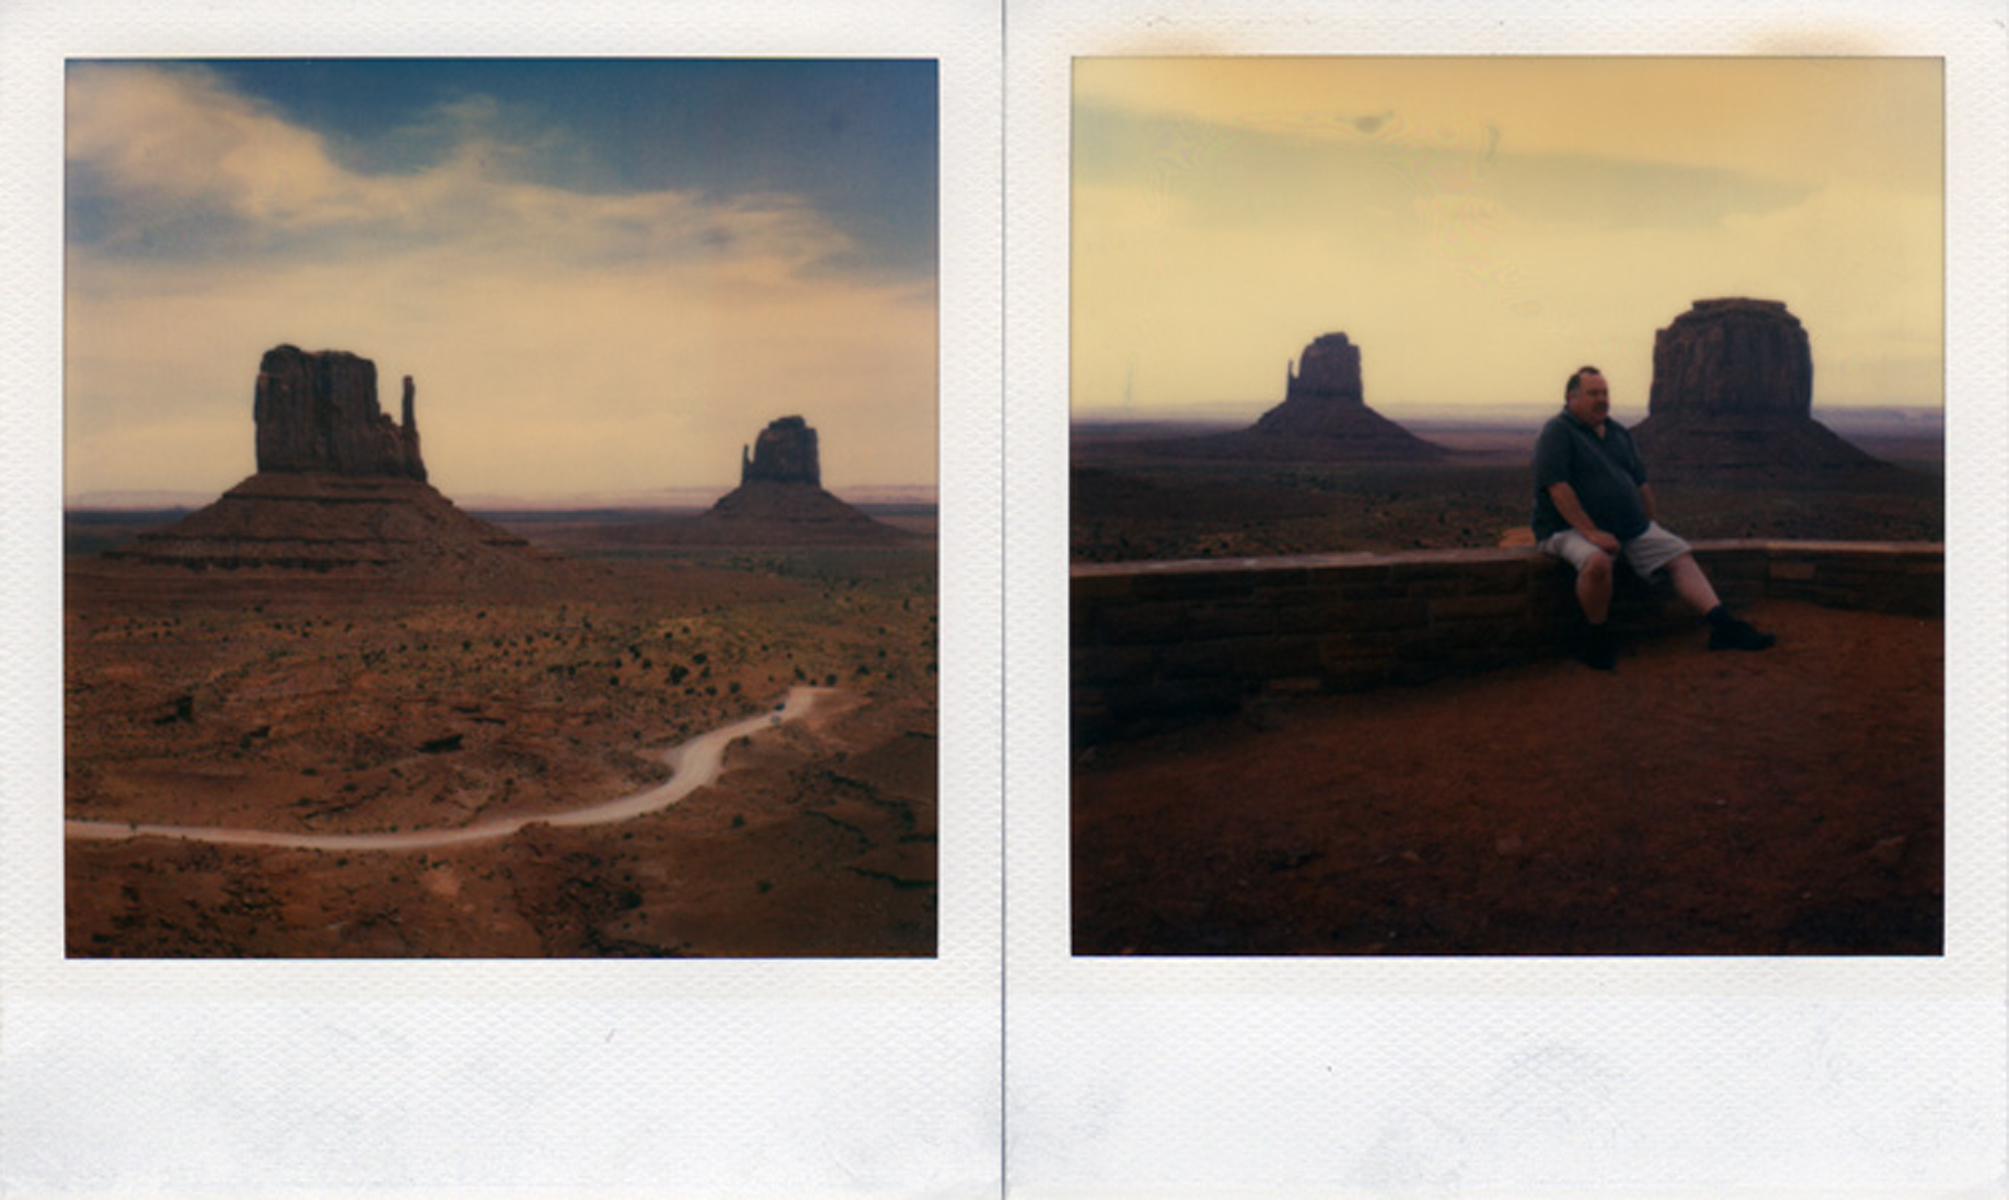 Monument Valley, Utah, 2004 (left); Sight seer, Monument Valley, Utah, 2004 (right).